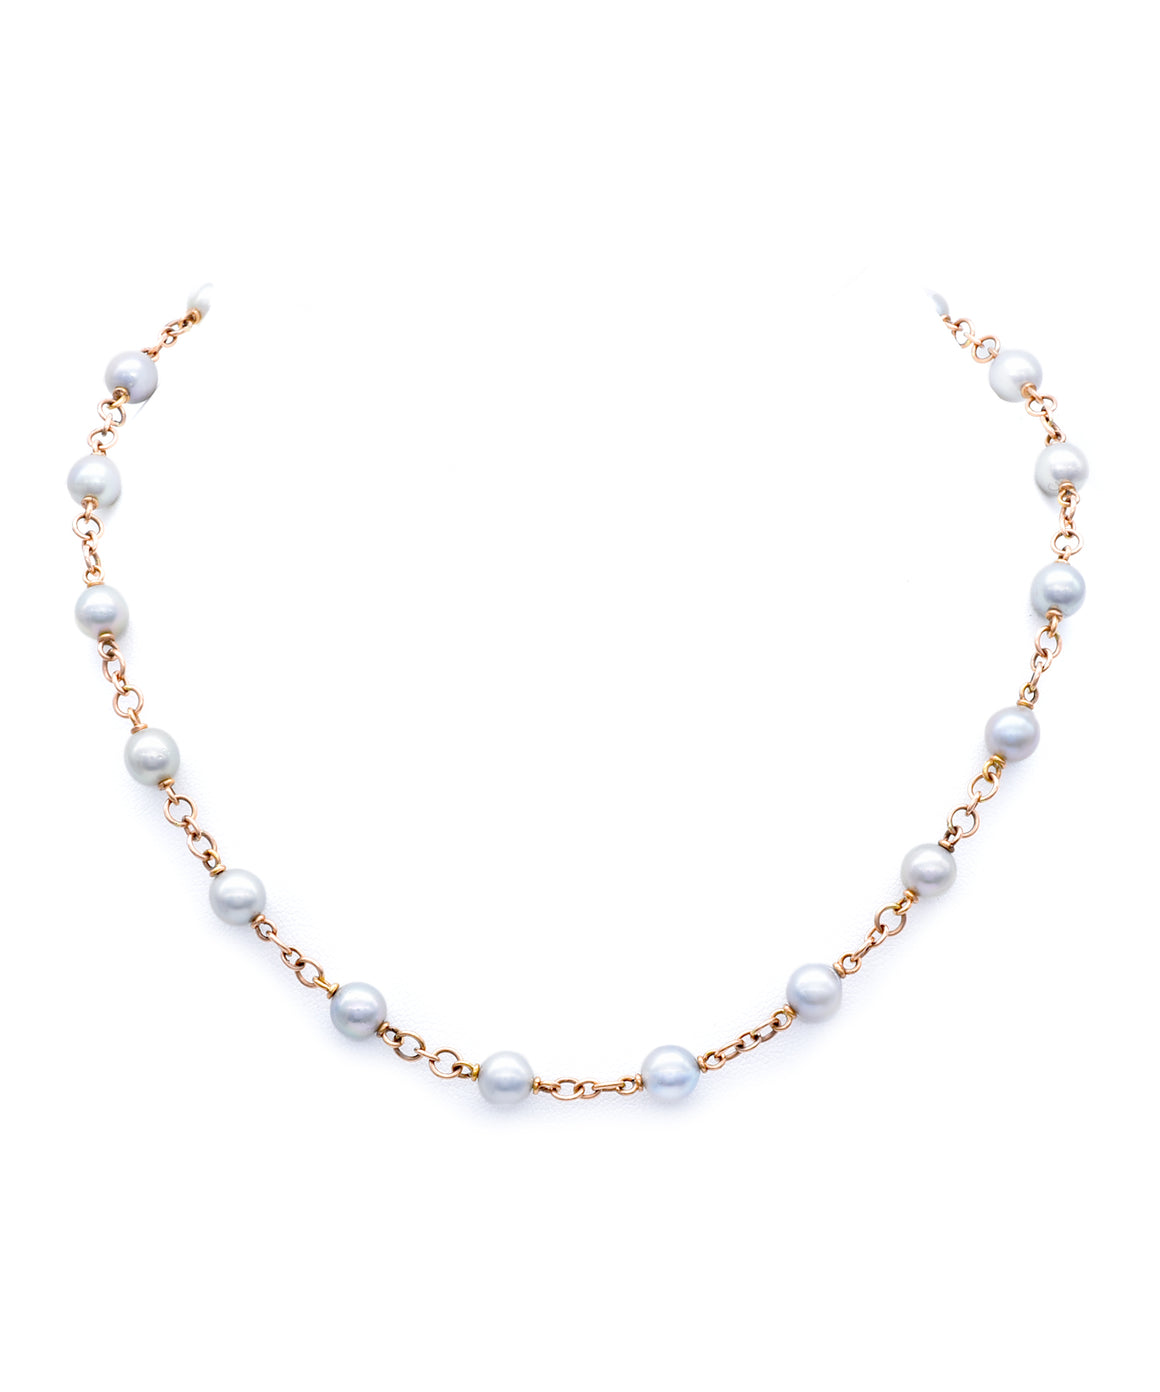 Grey pearl necklace - Lesley Ann Jewels